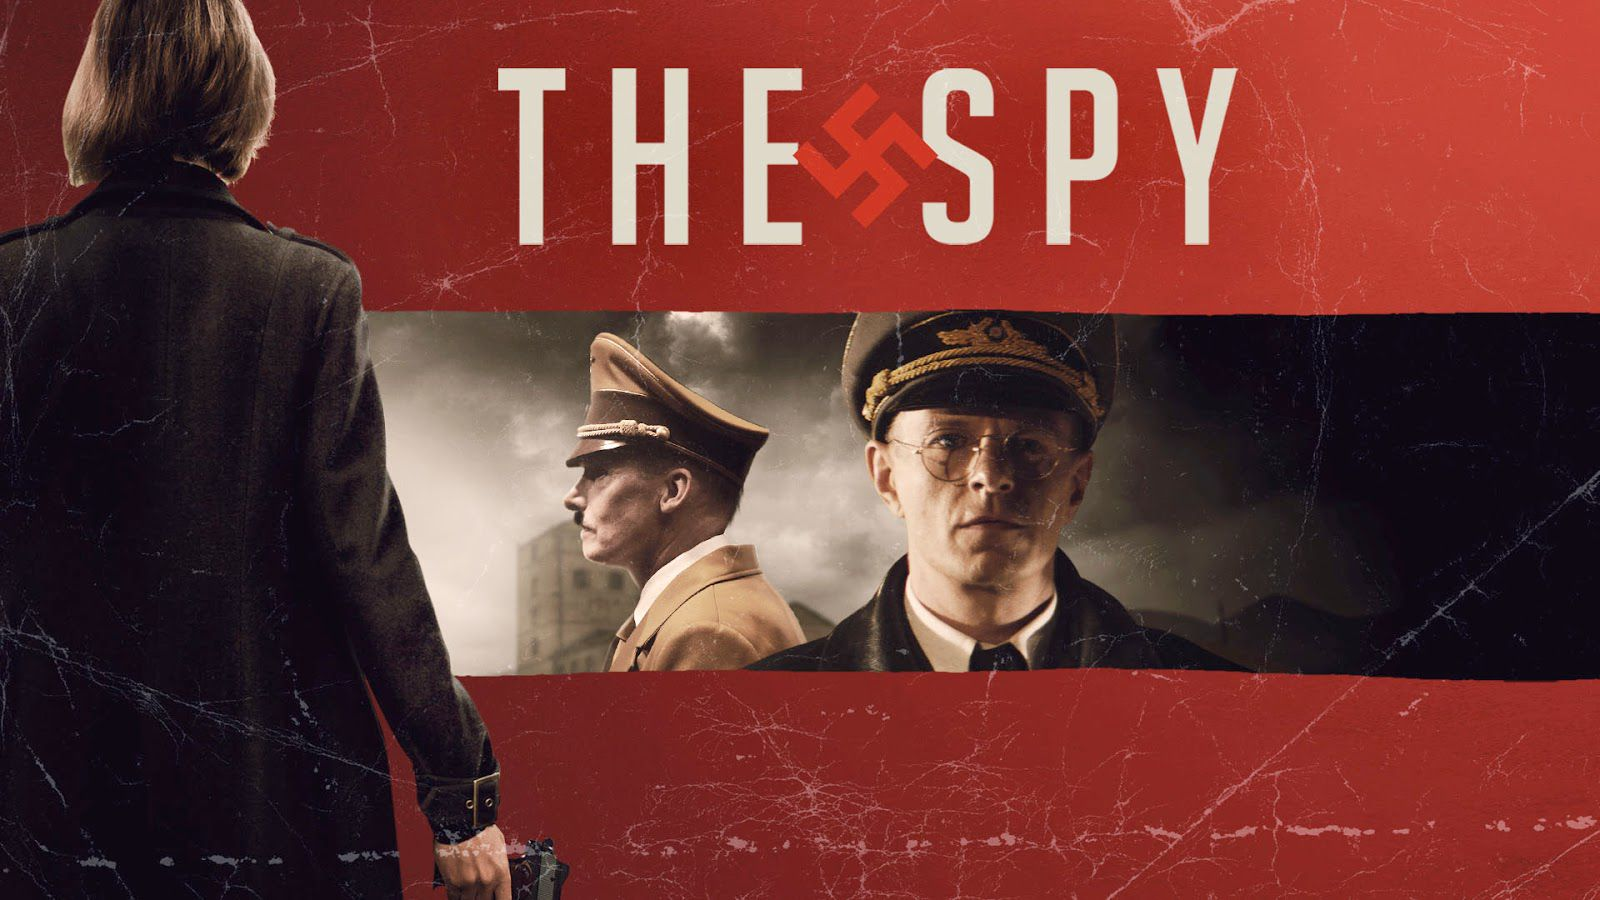 Voir Film The Spy - Film (2020) streaming VF gratuit complet